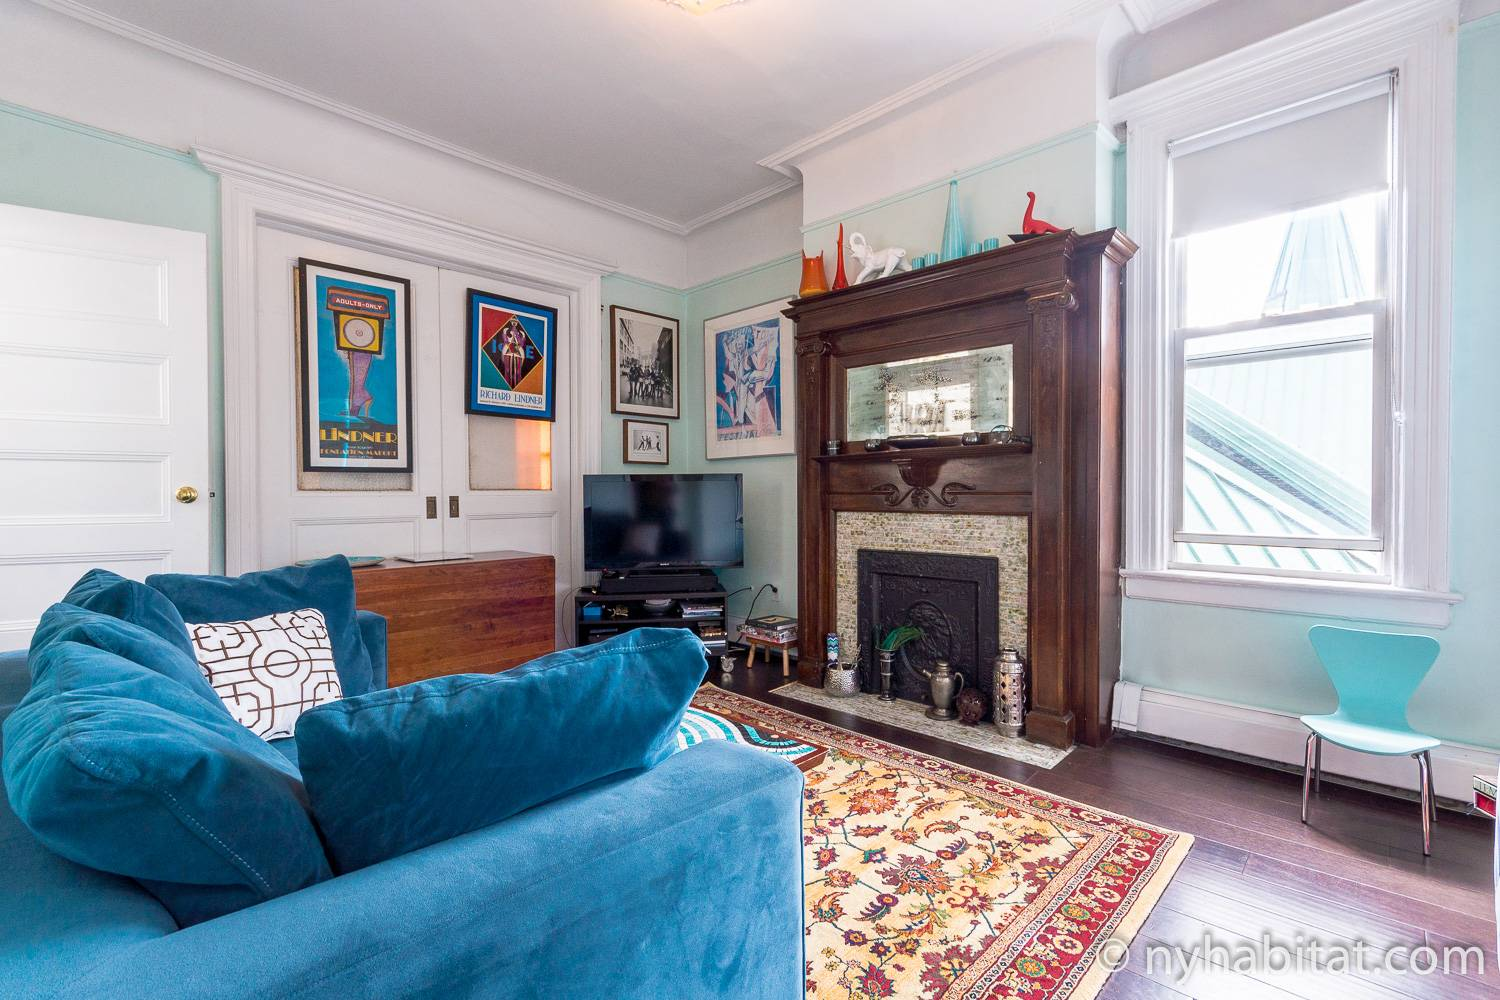 Image of living area of NY-17230 with sofa, decorative fireplace, television, area rug and artwork.